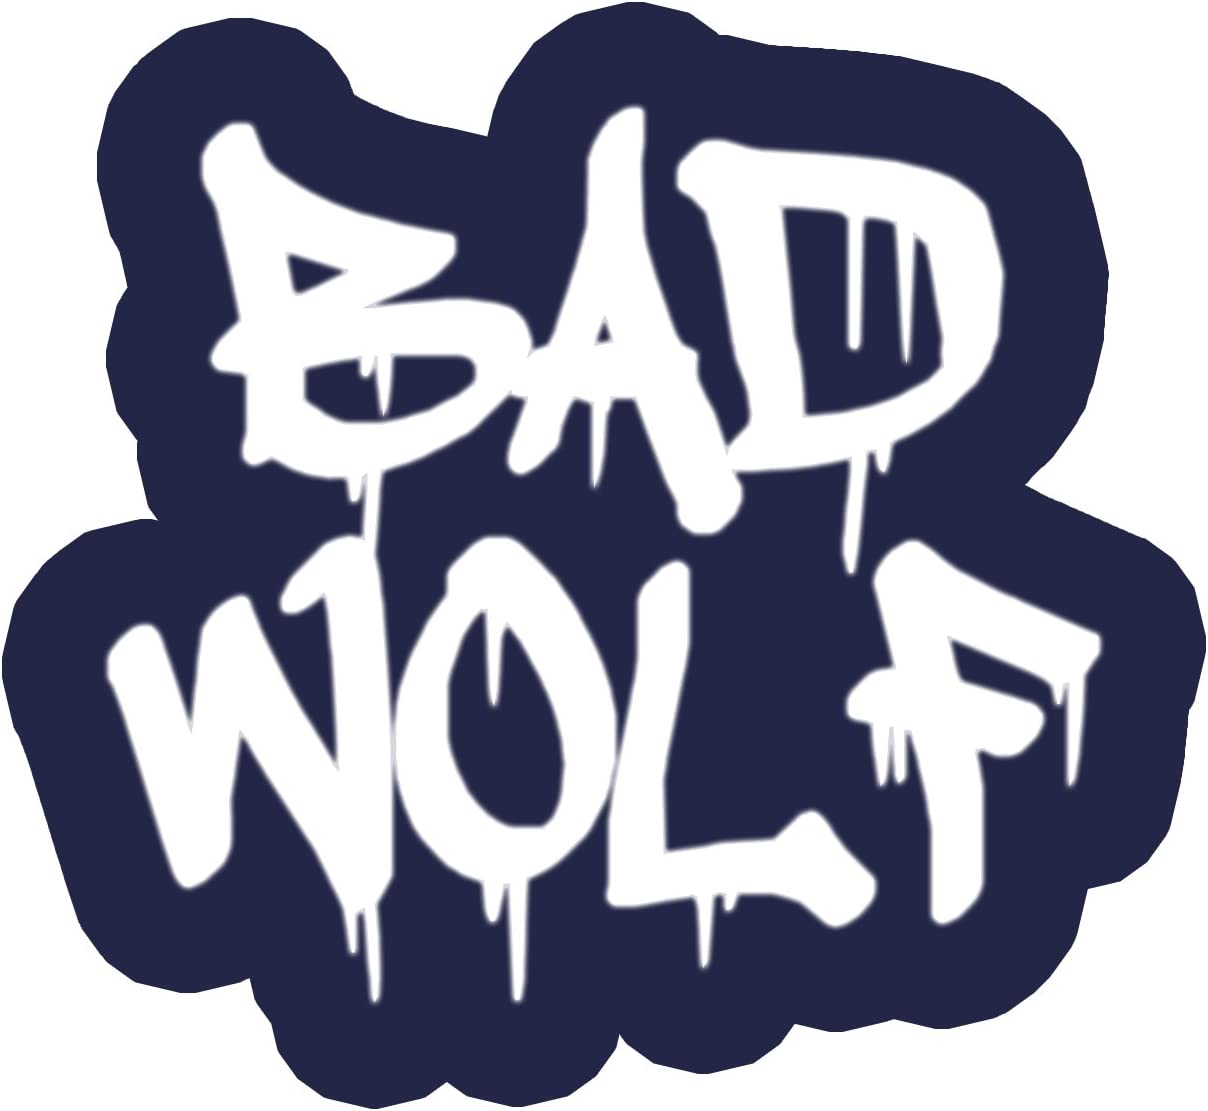 Bargain Max Decals Bad Graffiti Wolf Blue Paint Drip Window Laptop Car Sticker 5.5""